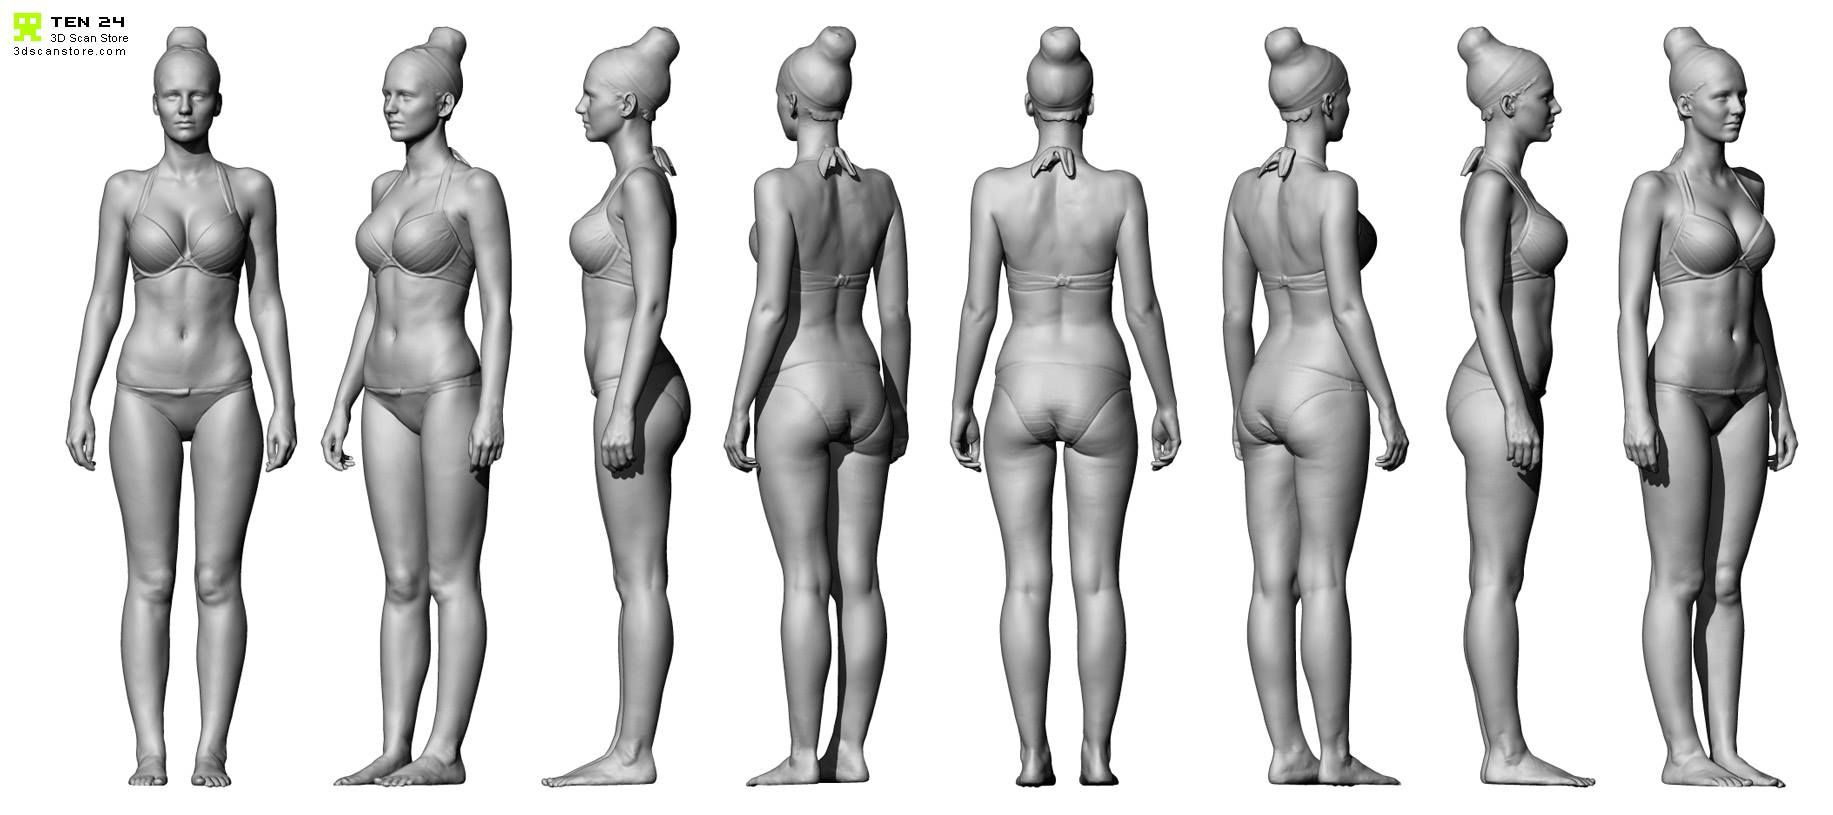 Pin by Olaf Pożoga on skans   Pinterest   Photo reference and Anatomy